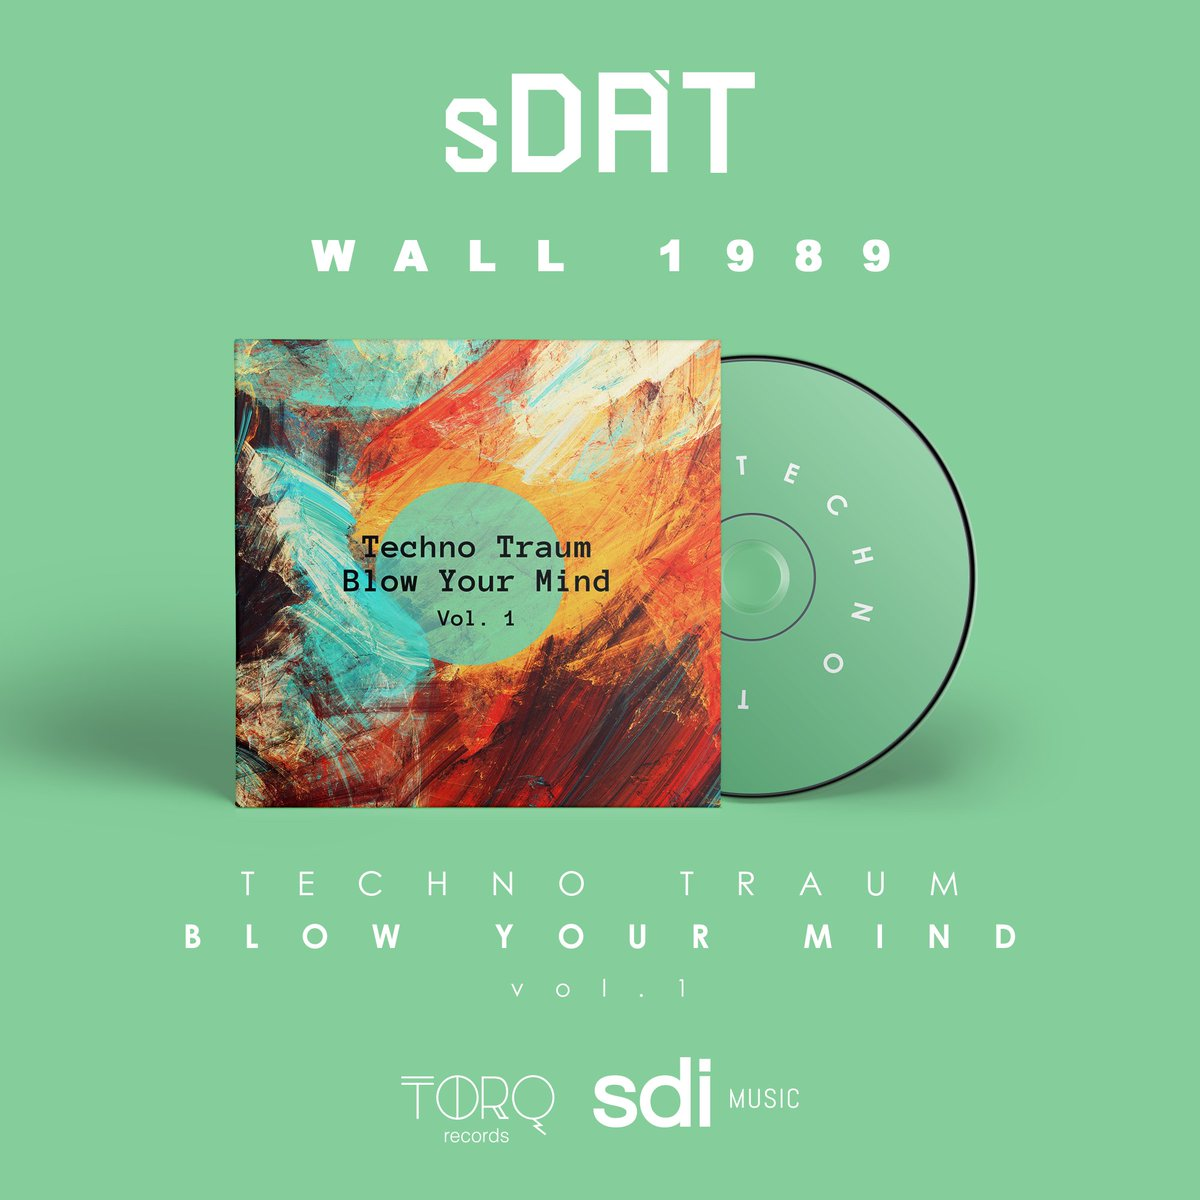 Wall 1989 by Sdat, is on the Techno Traum Blow Your Mind Compilation and the genre of the track is techno.  #techno #berlin #deutschland #berlinwall #berlinmusic #technomusic #night #life #recordlabel #subculture #track #newtrack #wave #street #electro #electroclashpic.twitter.com/zbRT7ErCT9